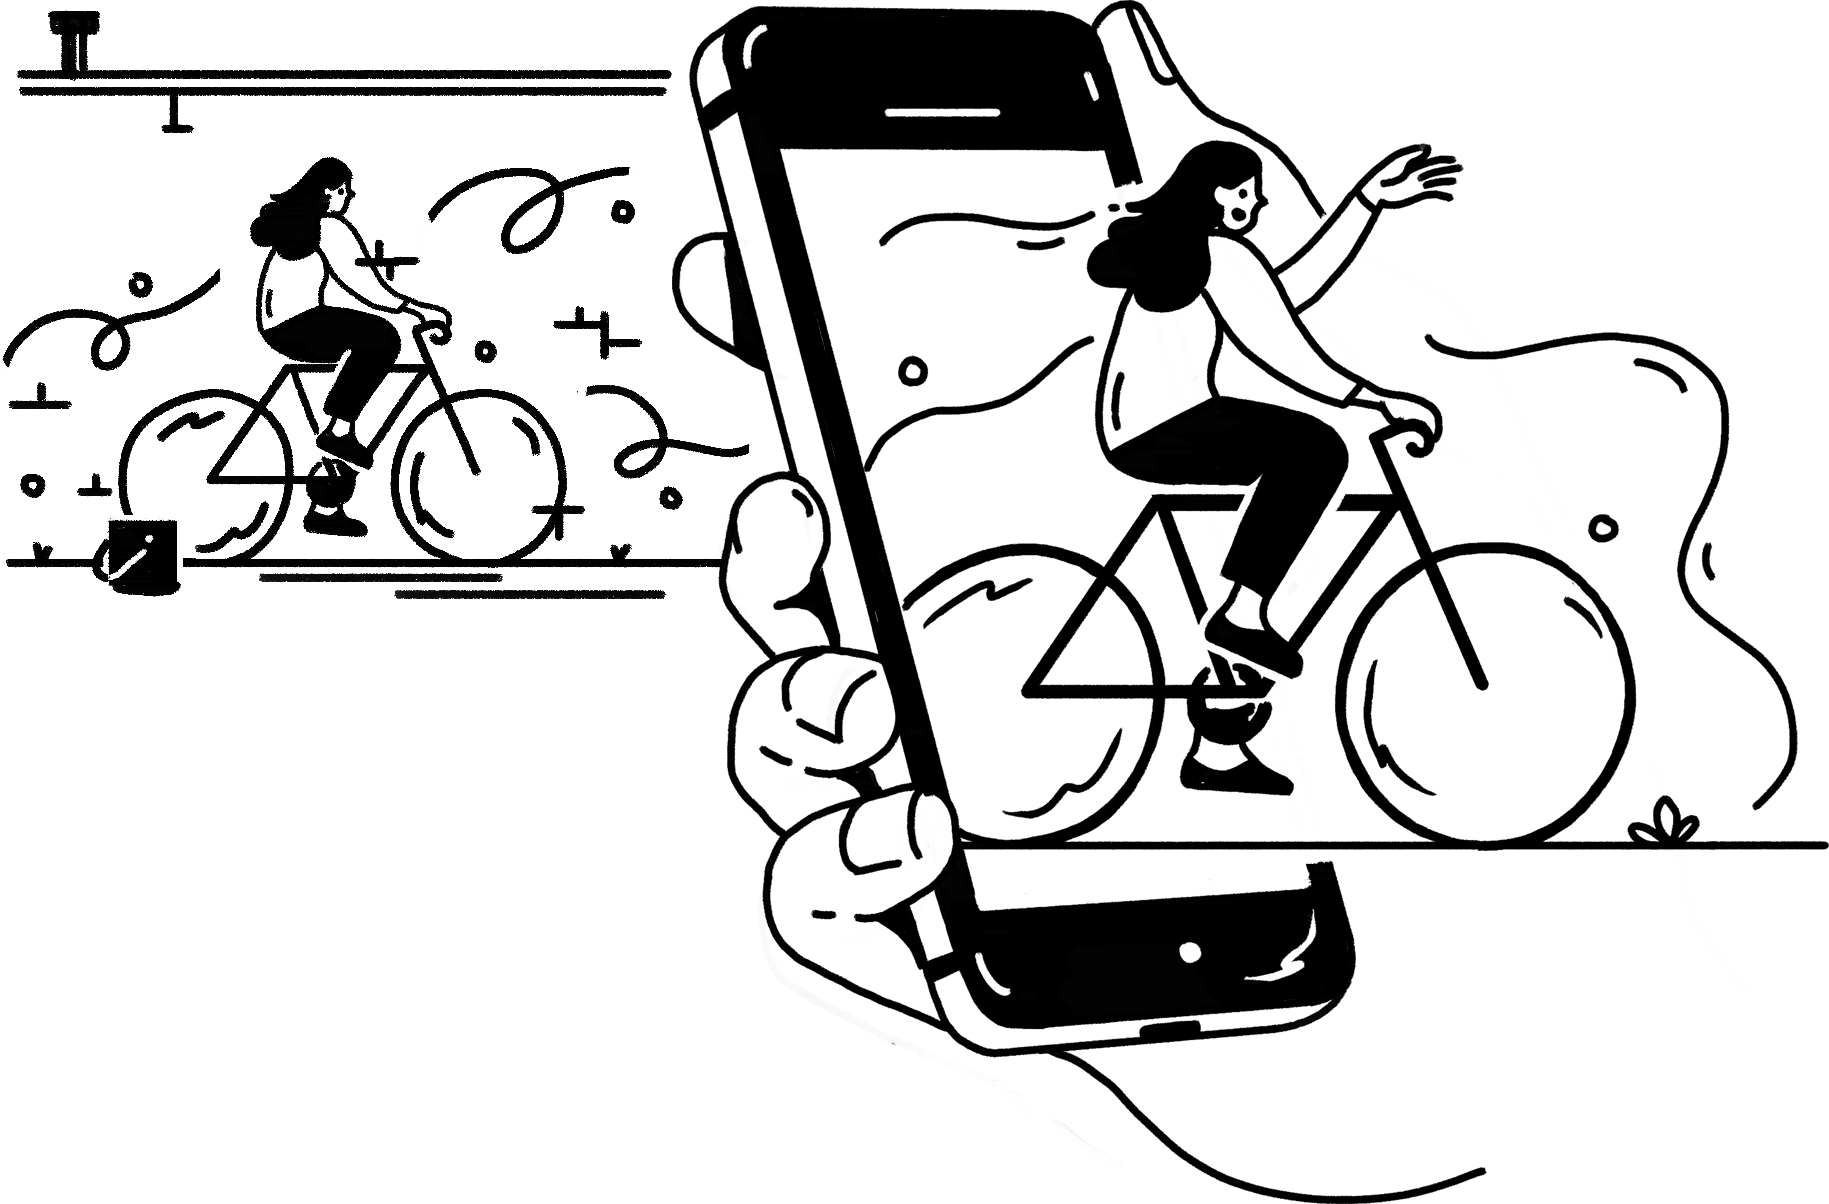 hand drawn line icon of a bicycle rider coming out of a phone to represent augmented reality